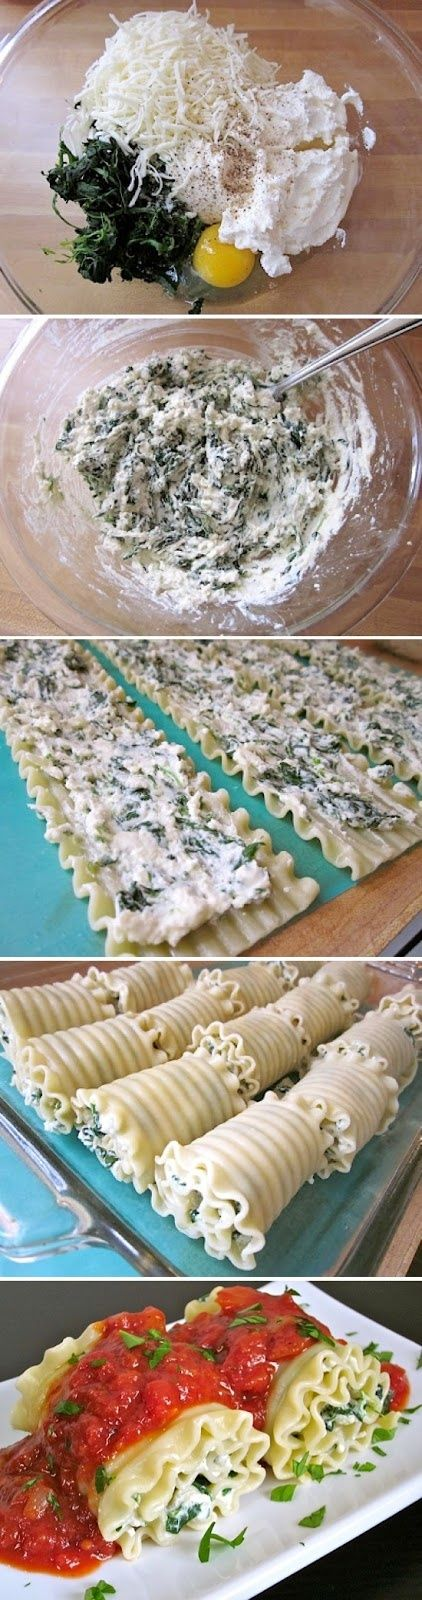 Spinach Lasagna Roll Ups. I love lasagna but I don't like how laborious it can be. This is great!